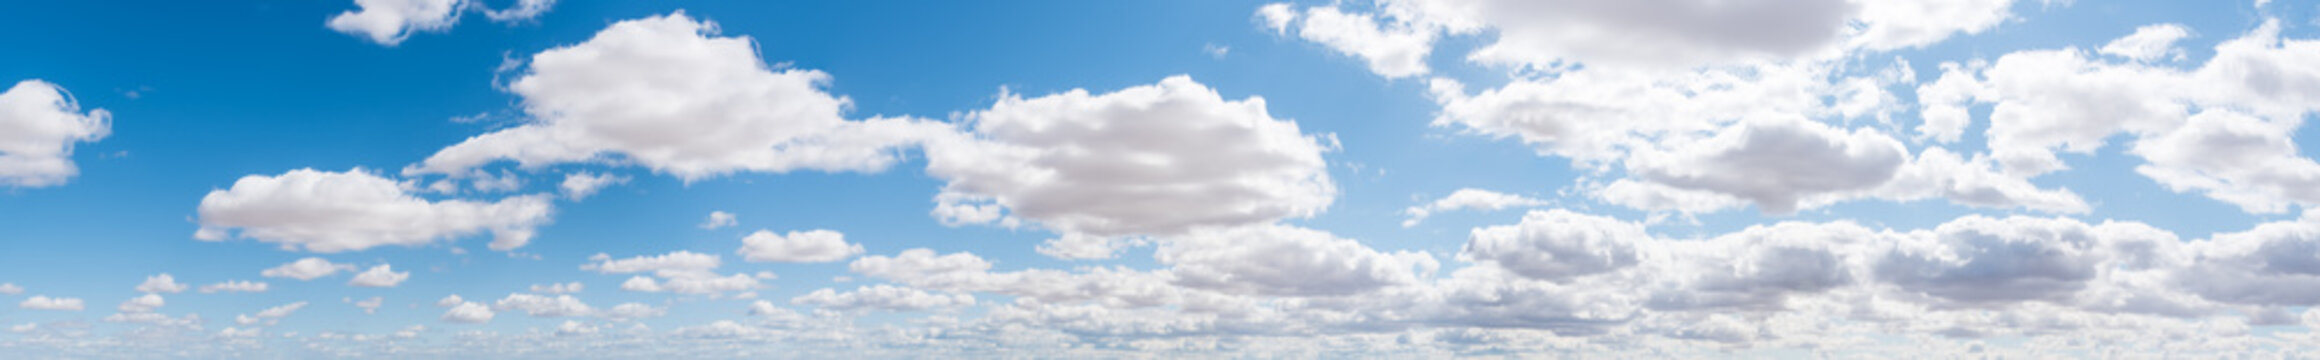 Blue Sky with Puffy White Clouds Panorama Background-2